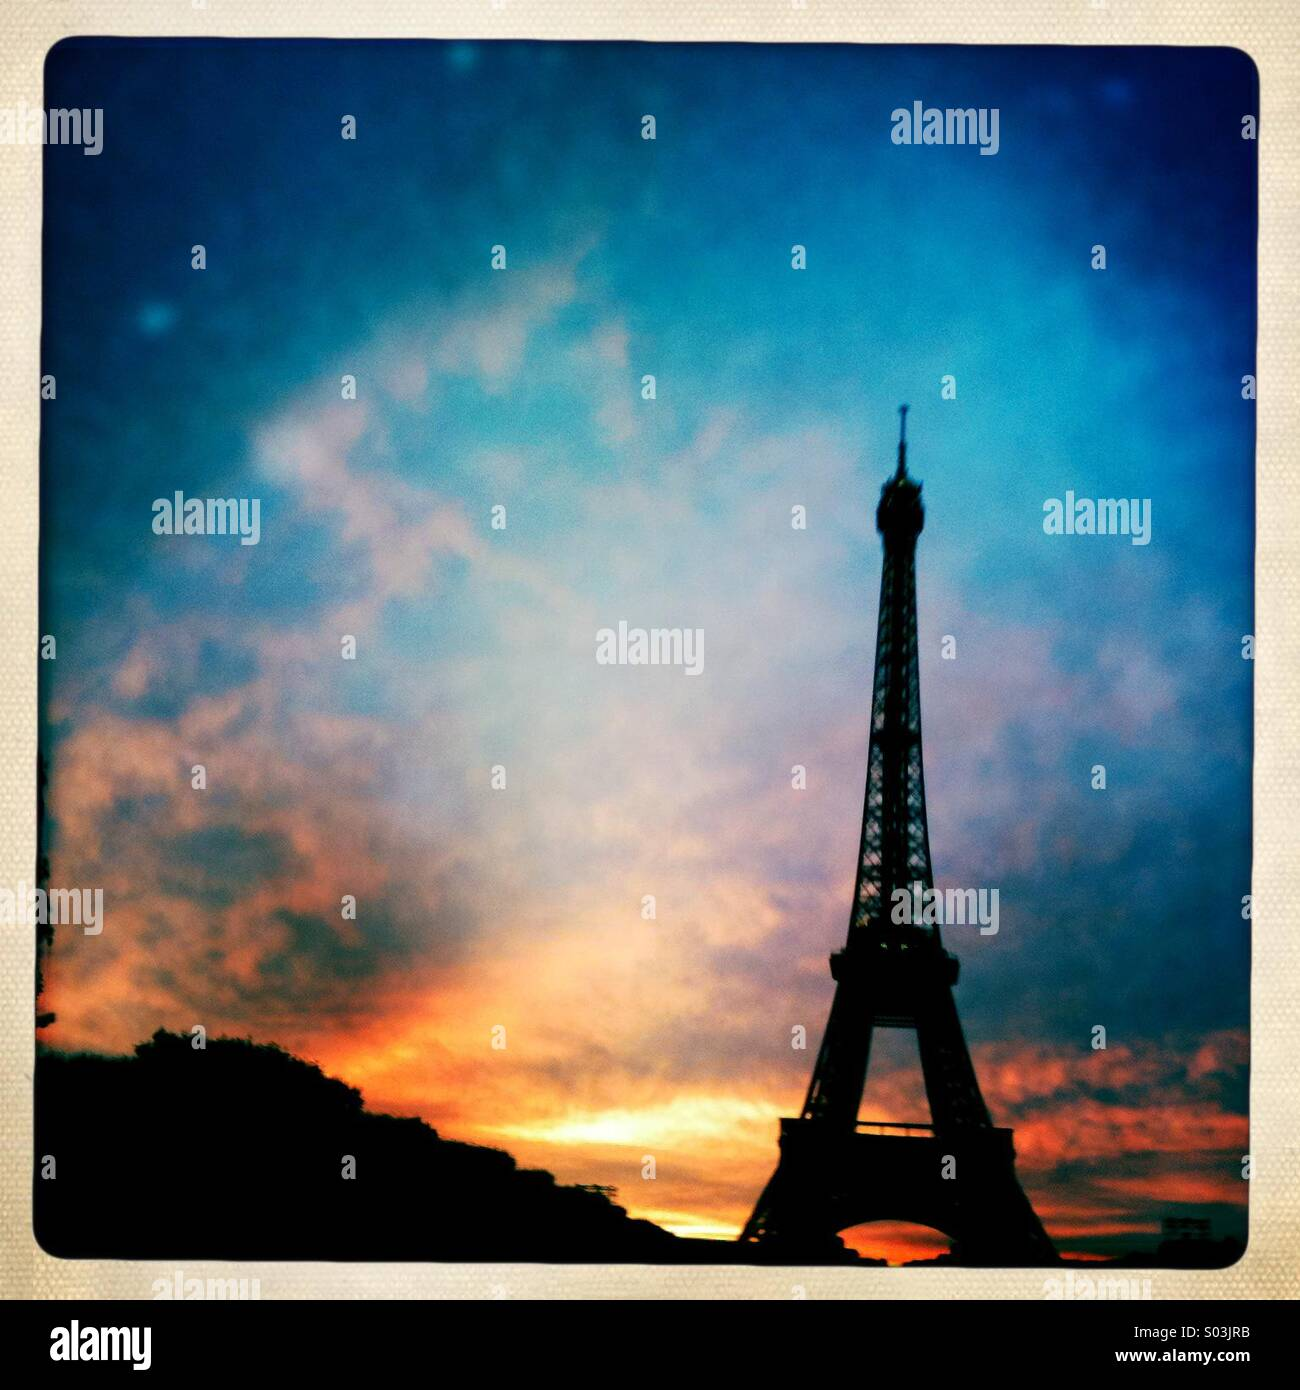 Eiffel Tower at sunset. - Stock Image